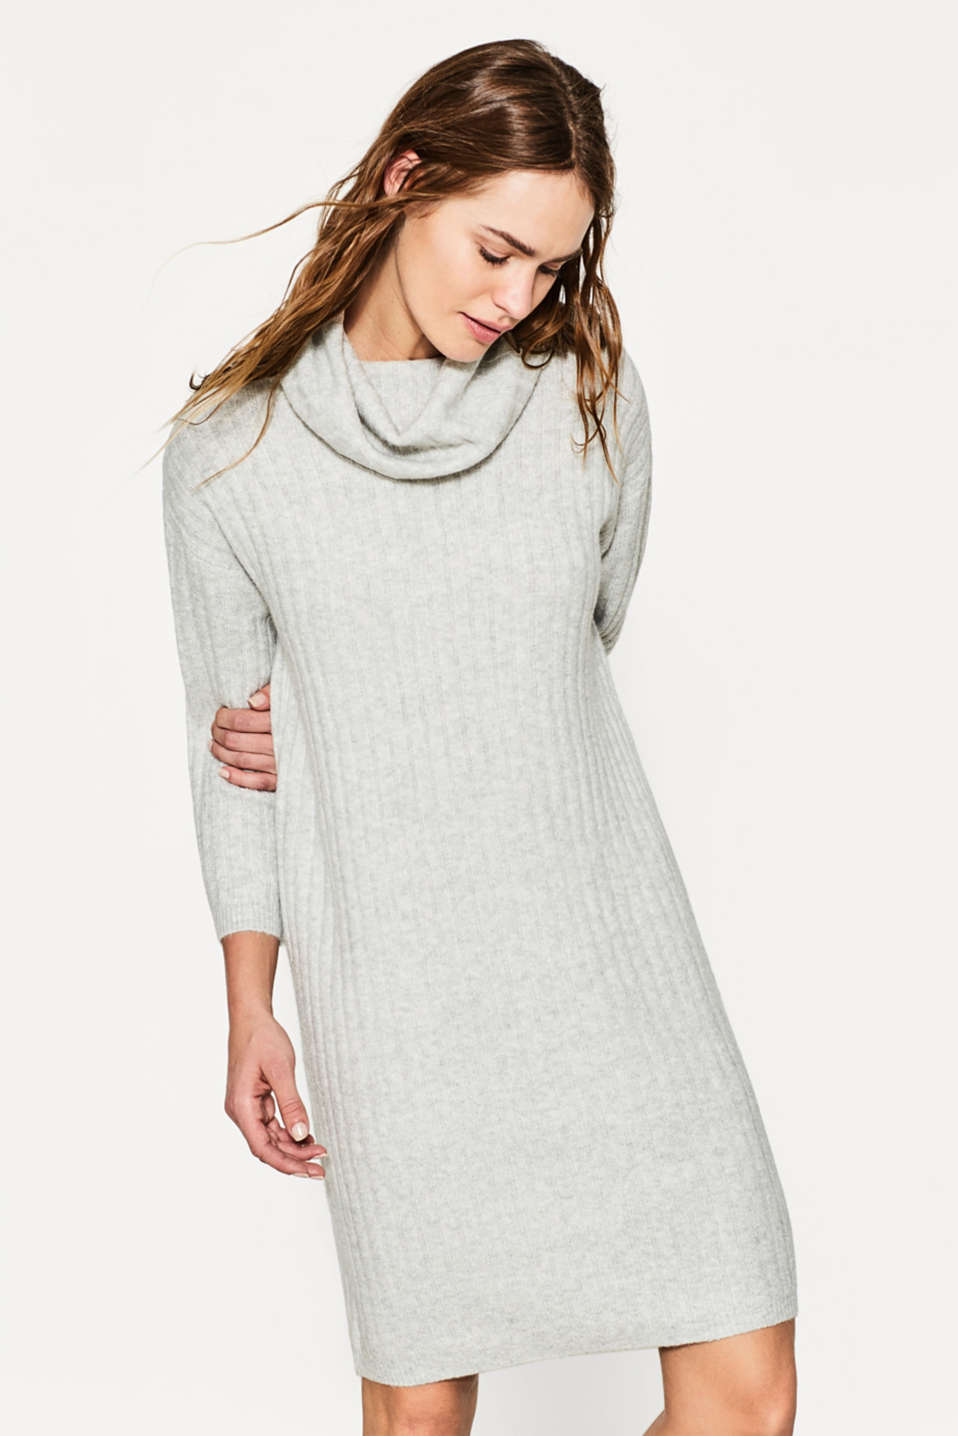 Esprit - Polo neck dress in compact yarn